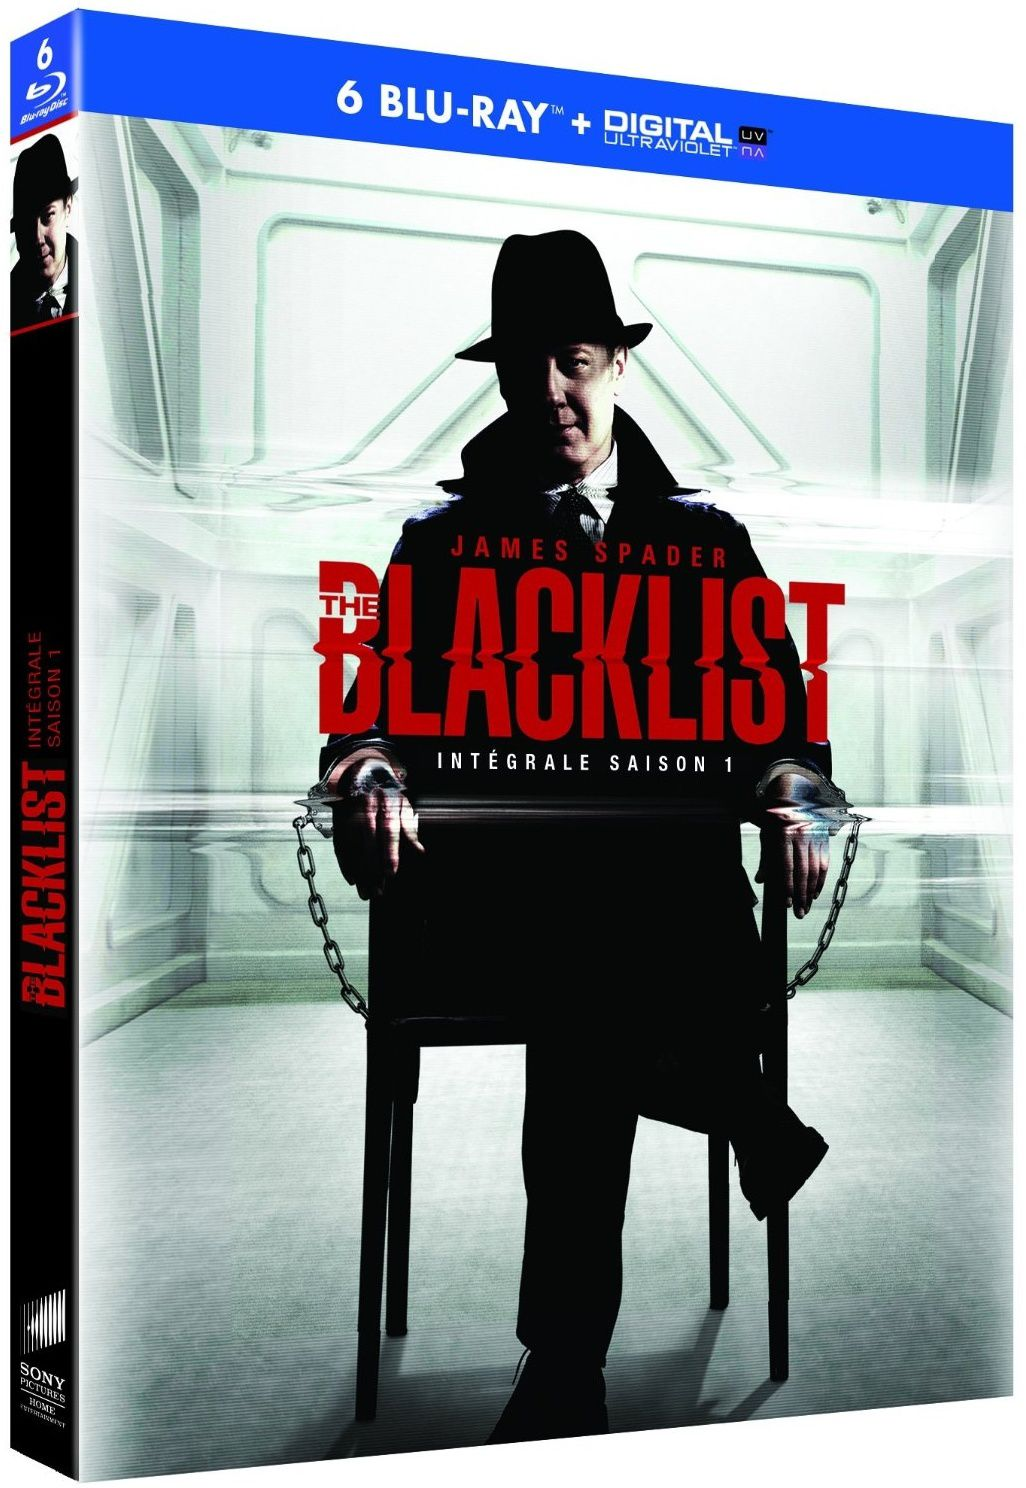 The blacklist saison 1 en dvd/blu-ray/digital ultraviolet à 25€ only !